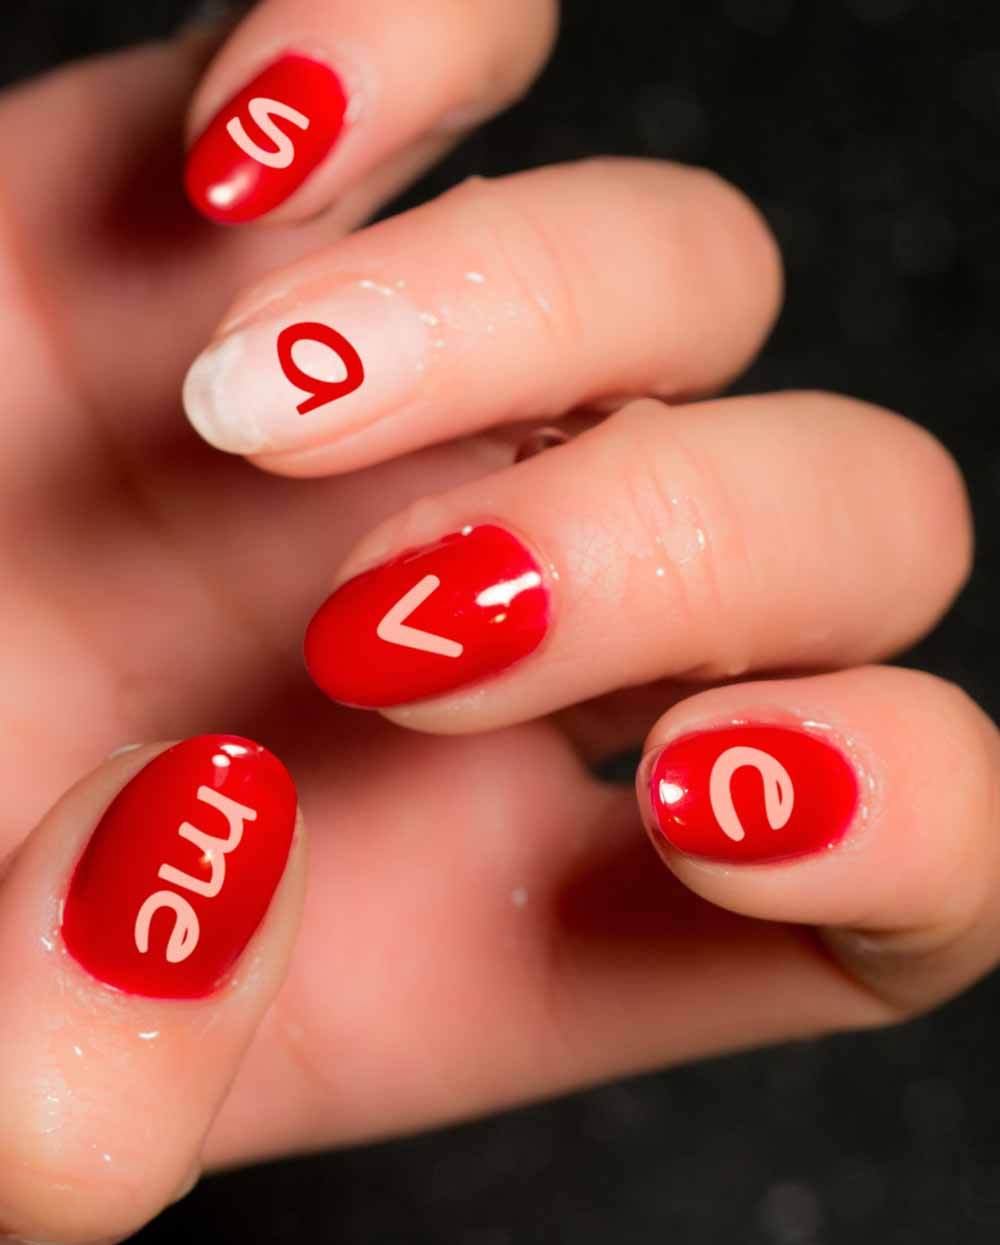 nail art with Valentine's day lettering